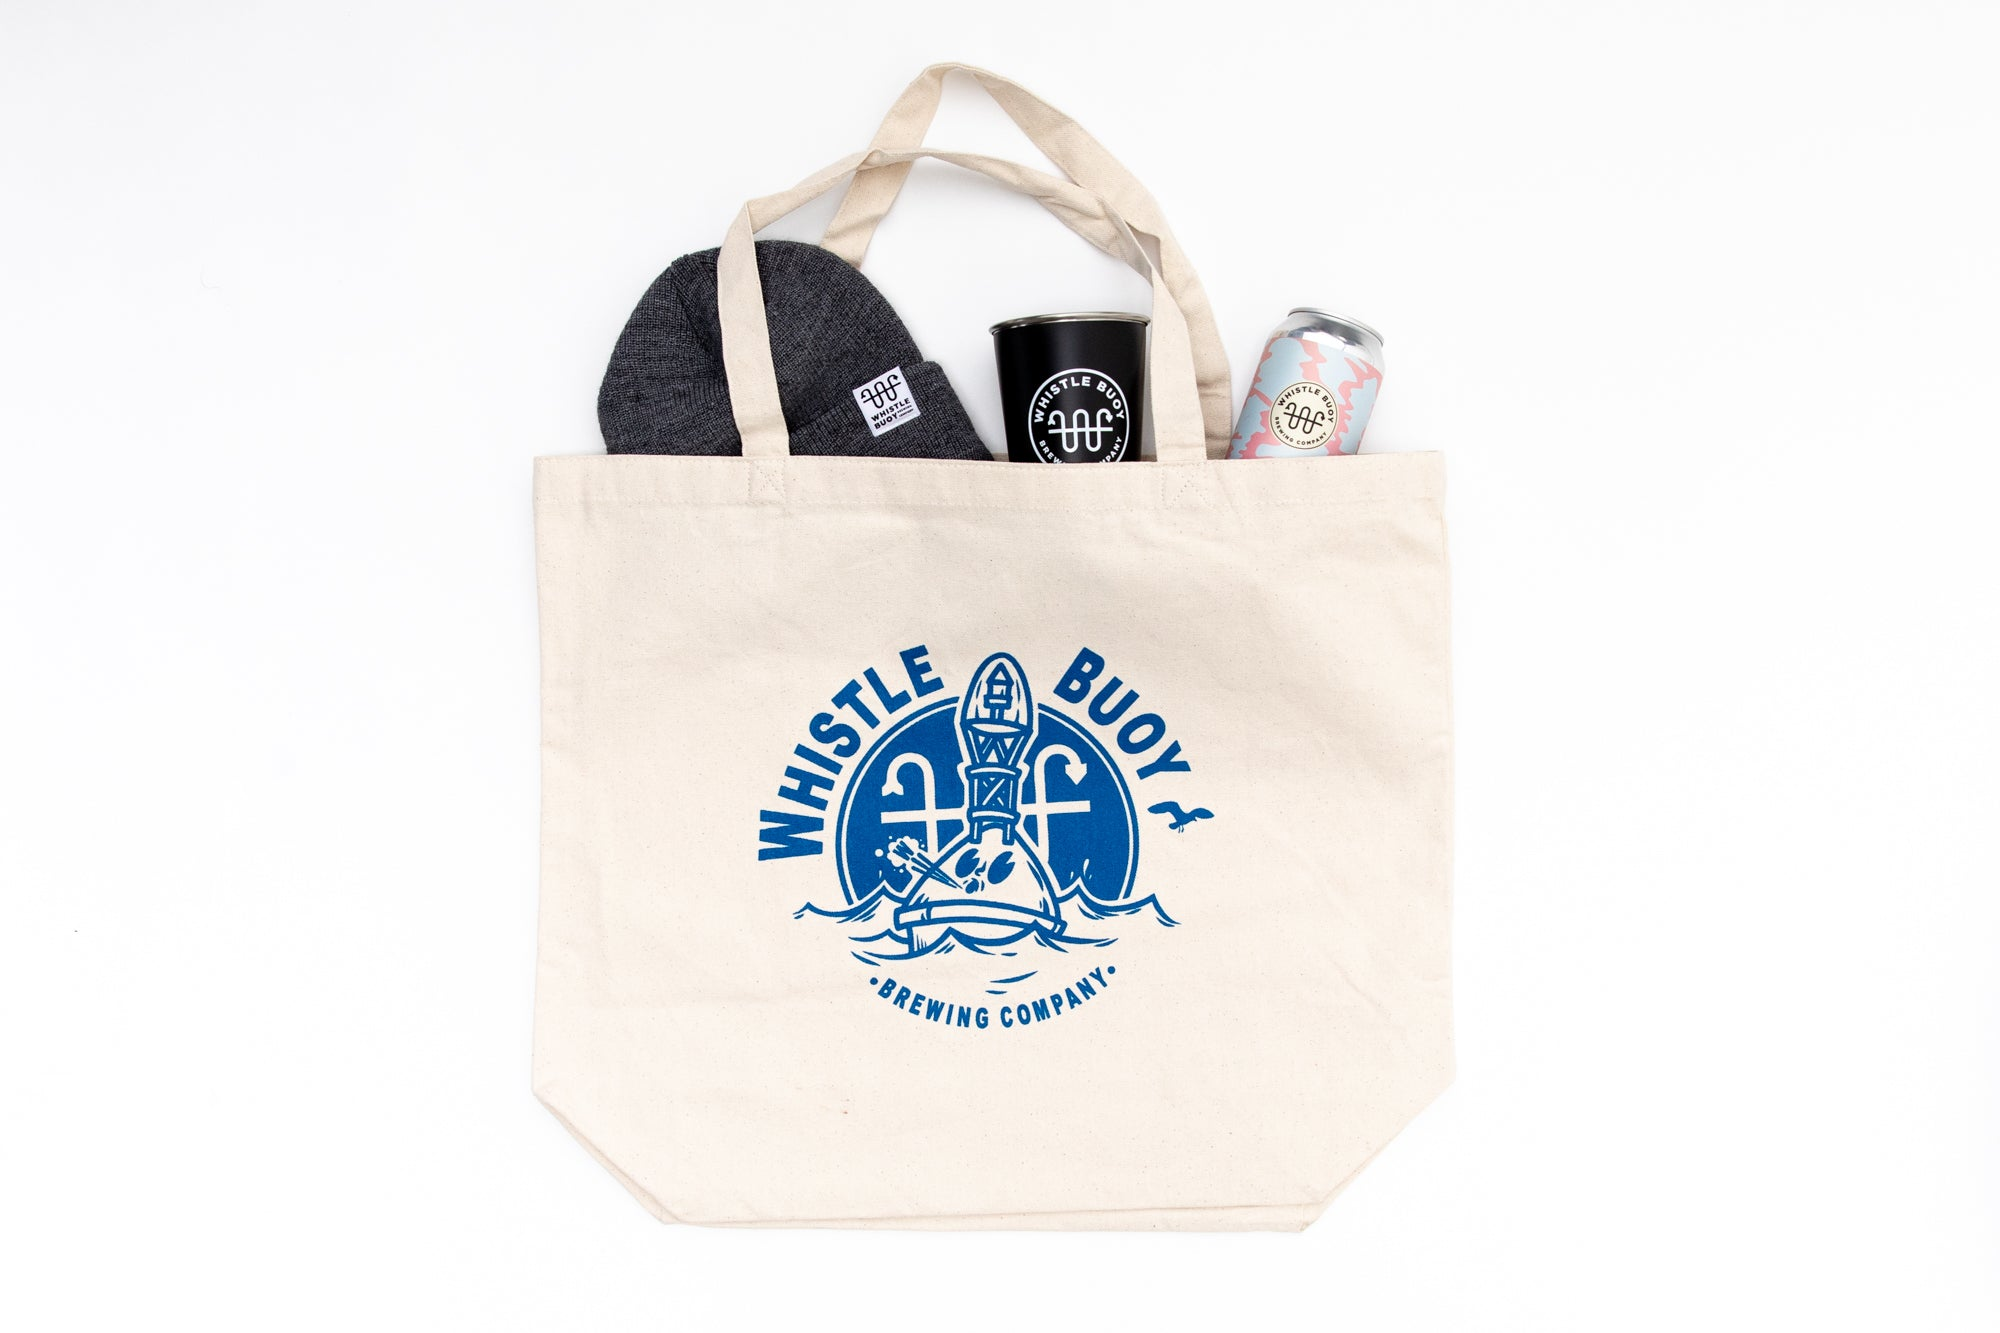 White Whistle Buoy tote bag with blue logo with products spilling out - studio shot